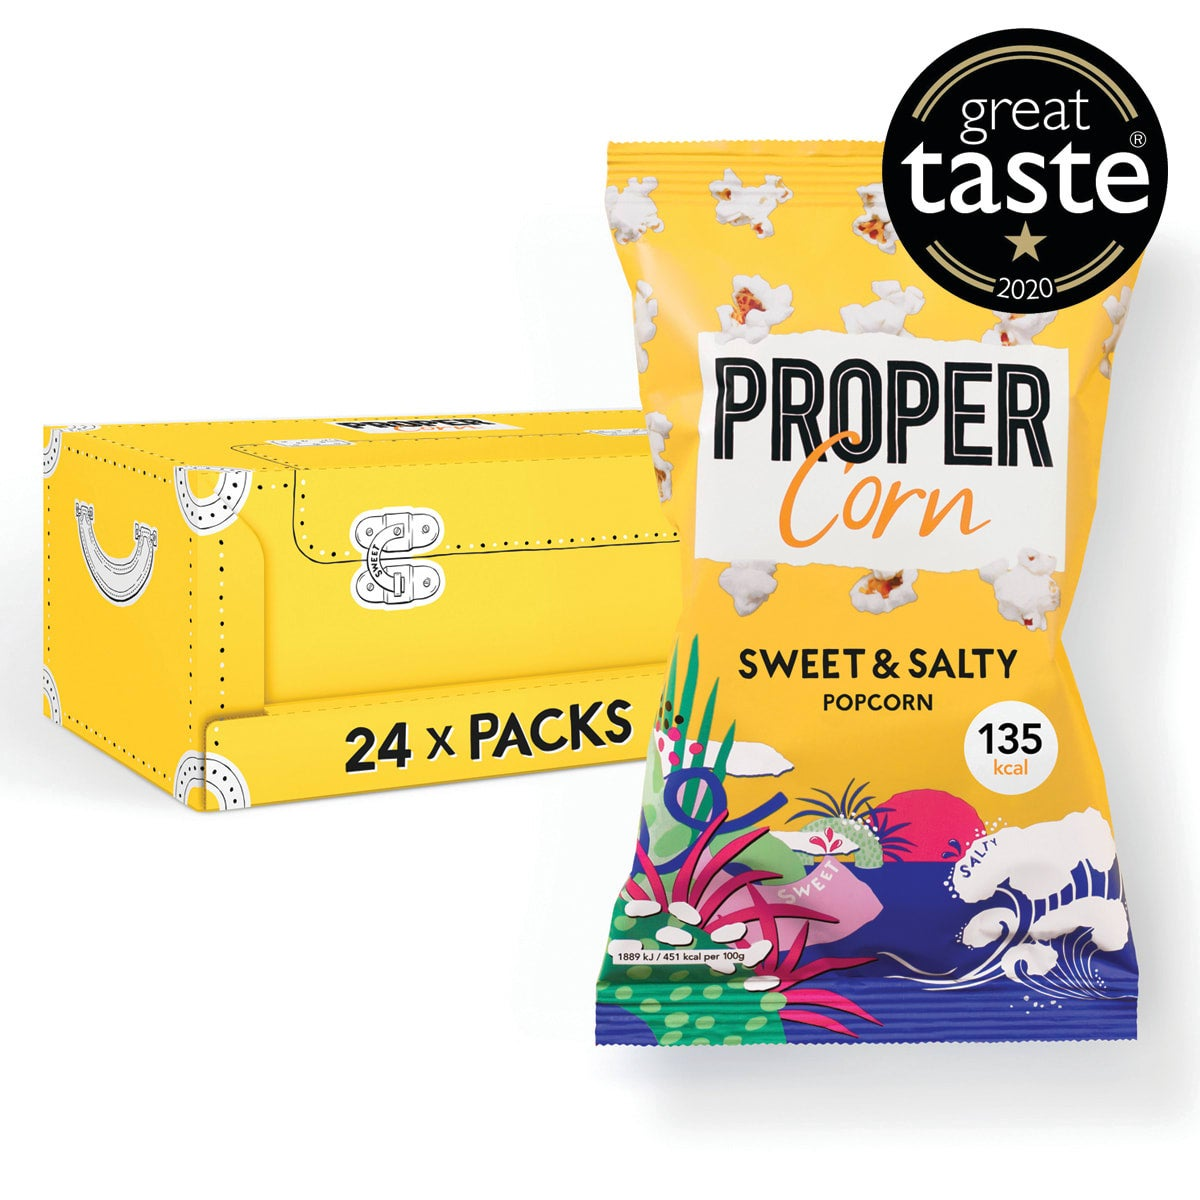 Box of 24, Propercorn Sweet and Salty Popcorn, 30g bag, sea salt and sweet raw cane sugar, 5 SmartPoints values per bag, gluten free, suitable for vegans